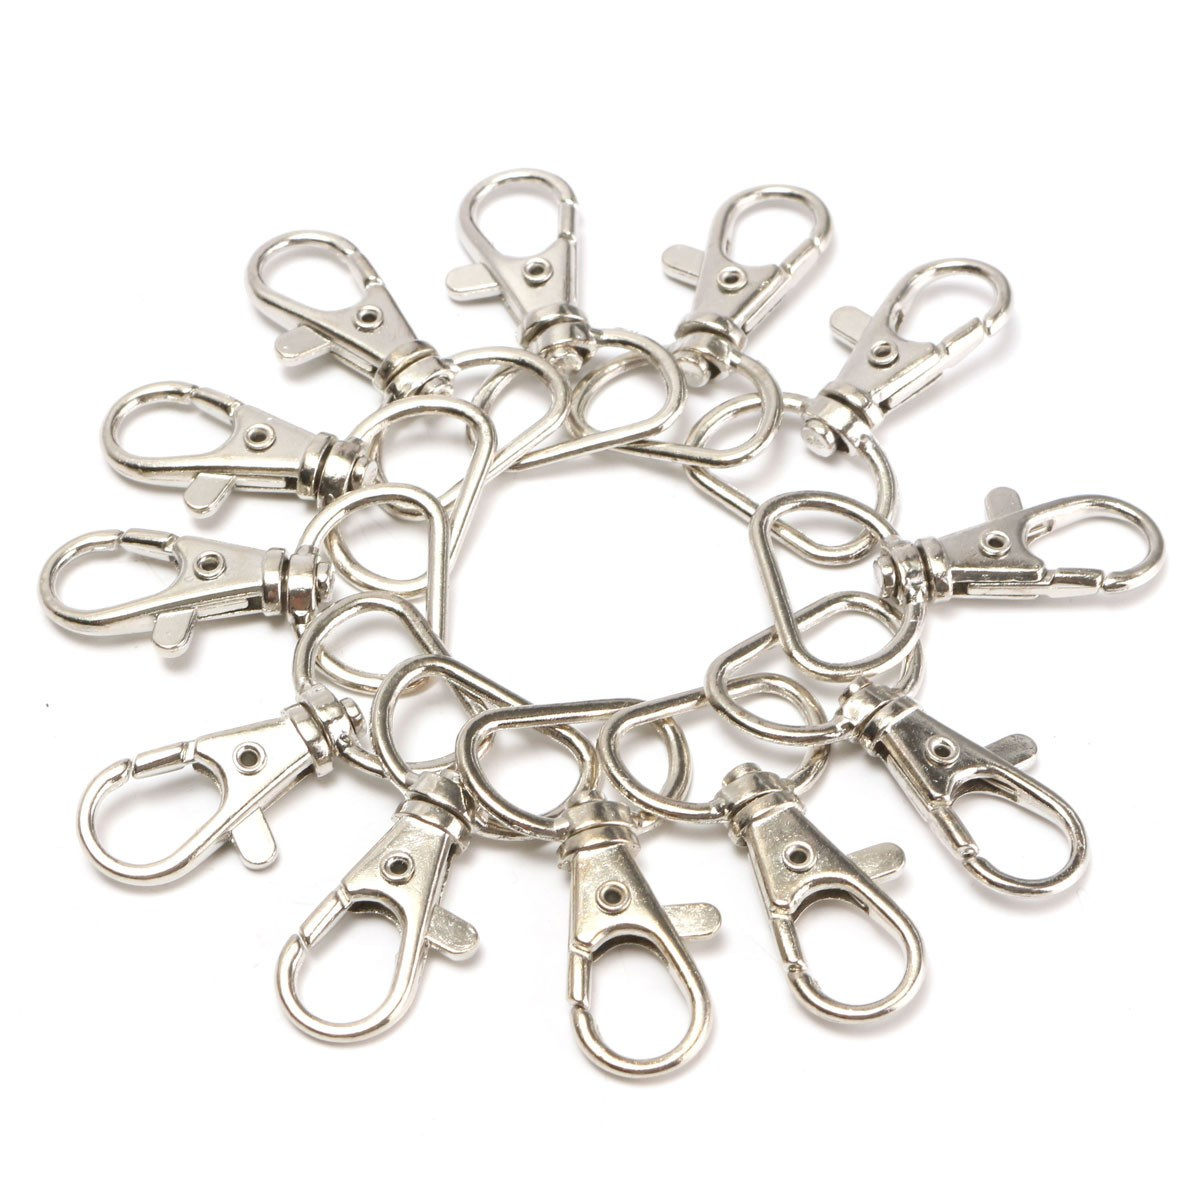 25pcs/packs Silver Metal Lanyard Swivel Snap Diy Handbag Hook Portable Lobster Clasp Clips Bag Accessories Wholesale Buckle Hook To Make One Feel At Ease And Energetic Luggage & Bags